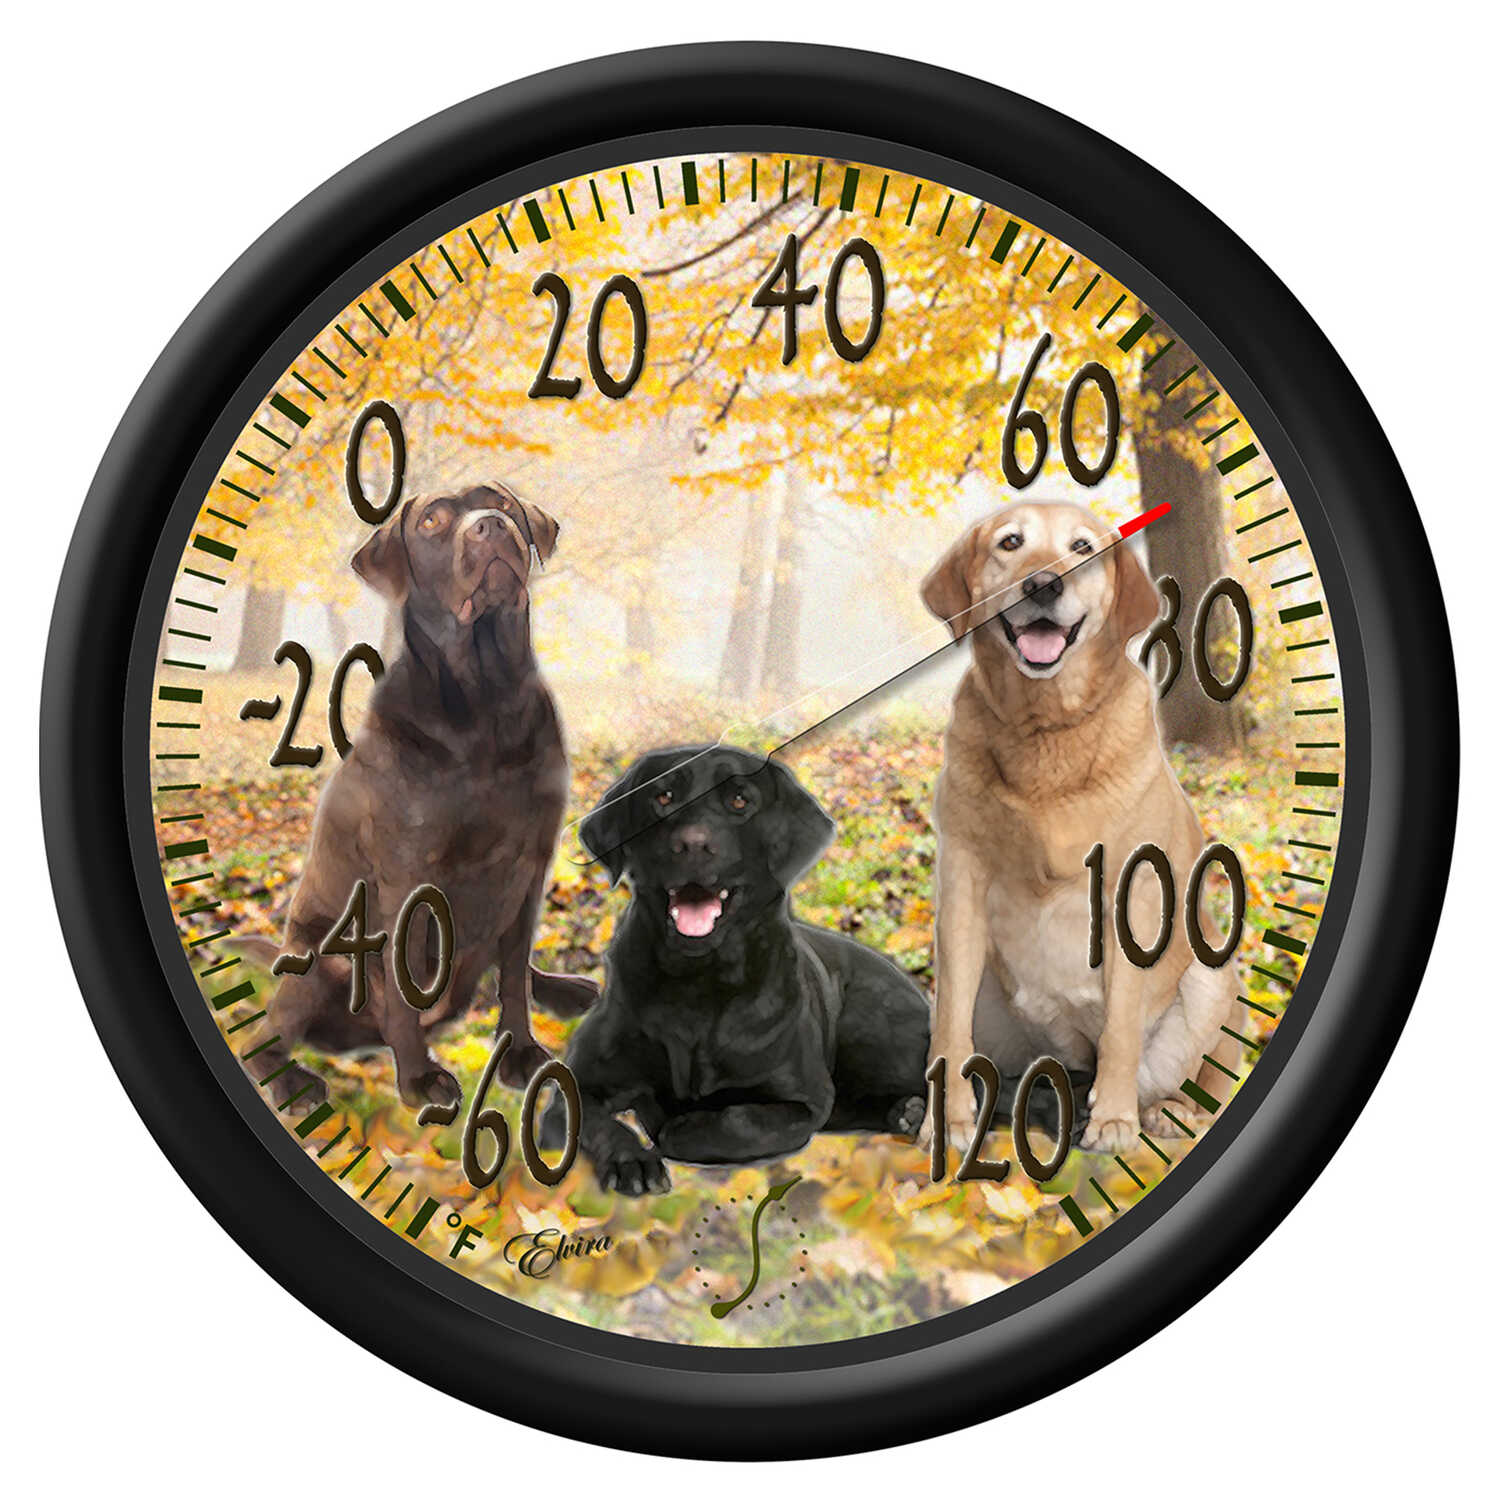 Taylor  Dogs Design  Dial Thermometer  Plastic  Multicolored